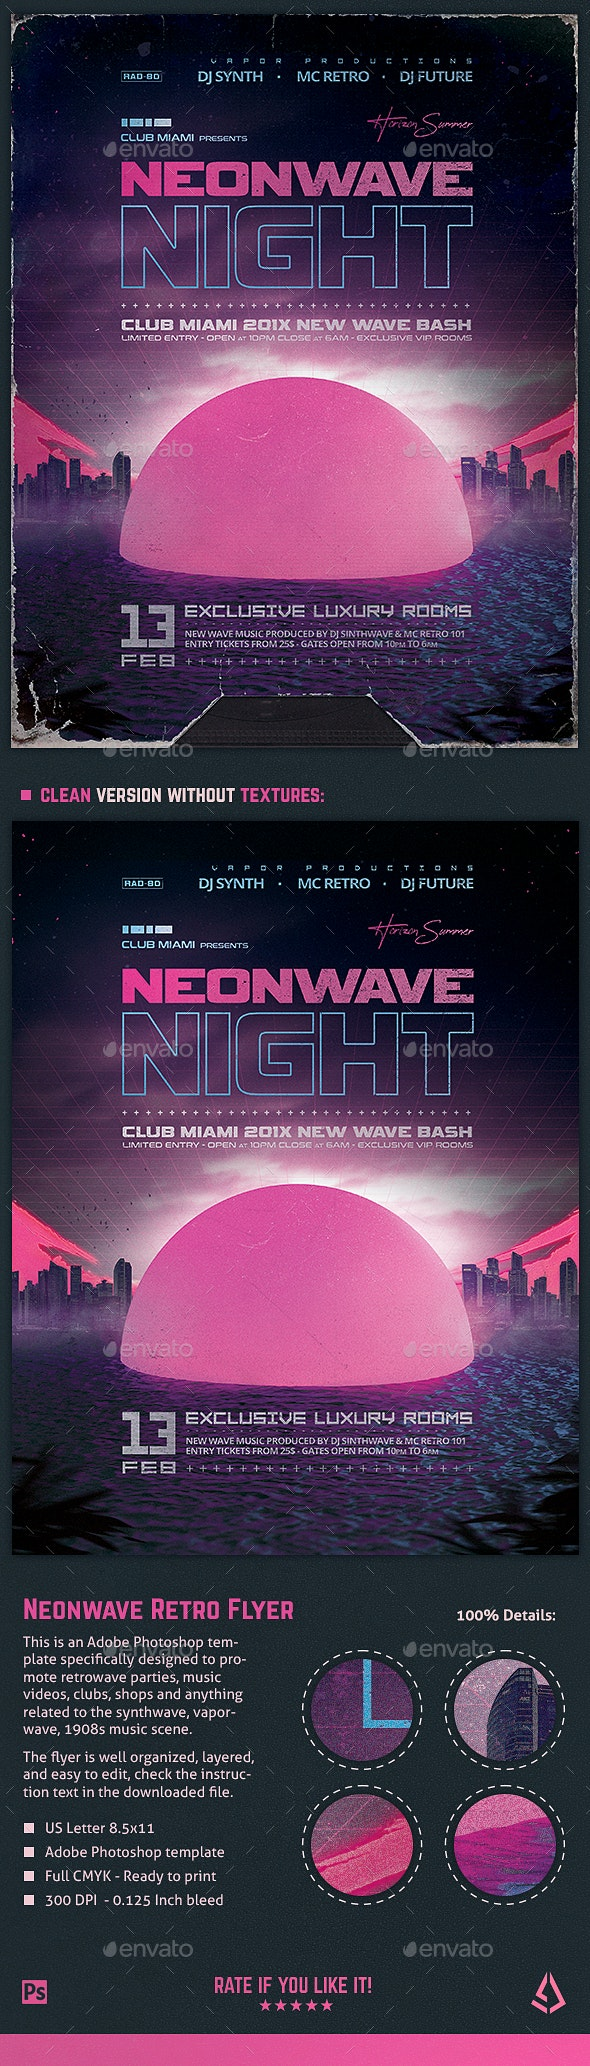 Retrowave Night 1980s VHS Synthwave Template - Clubs & Parties Events